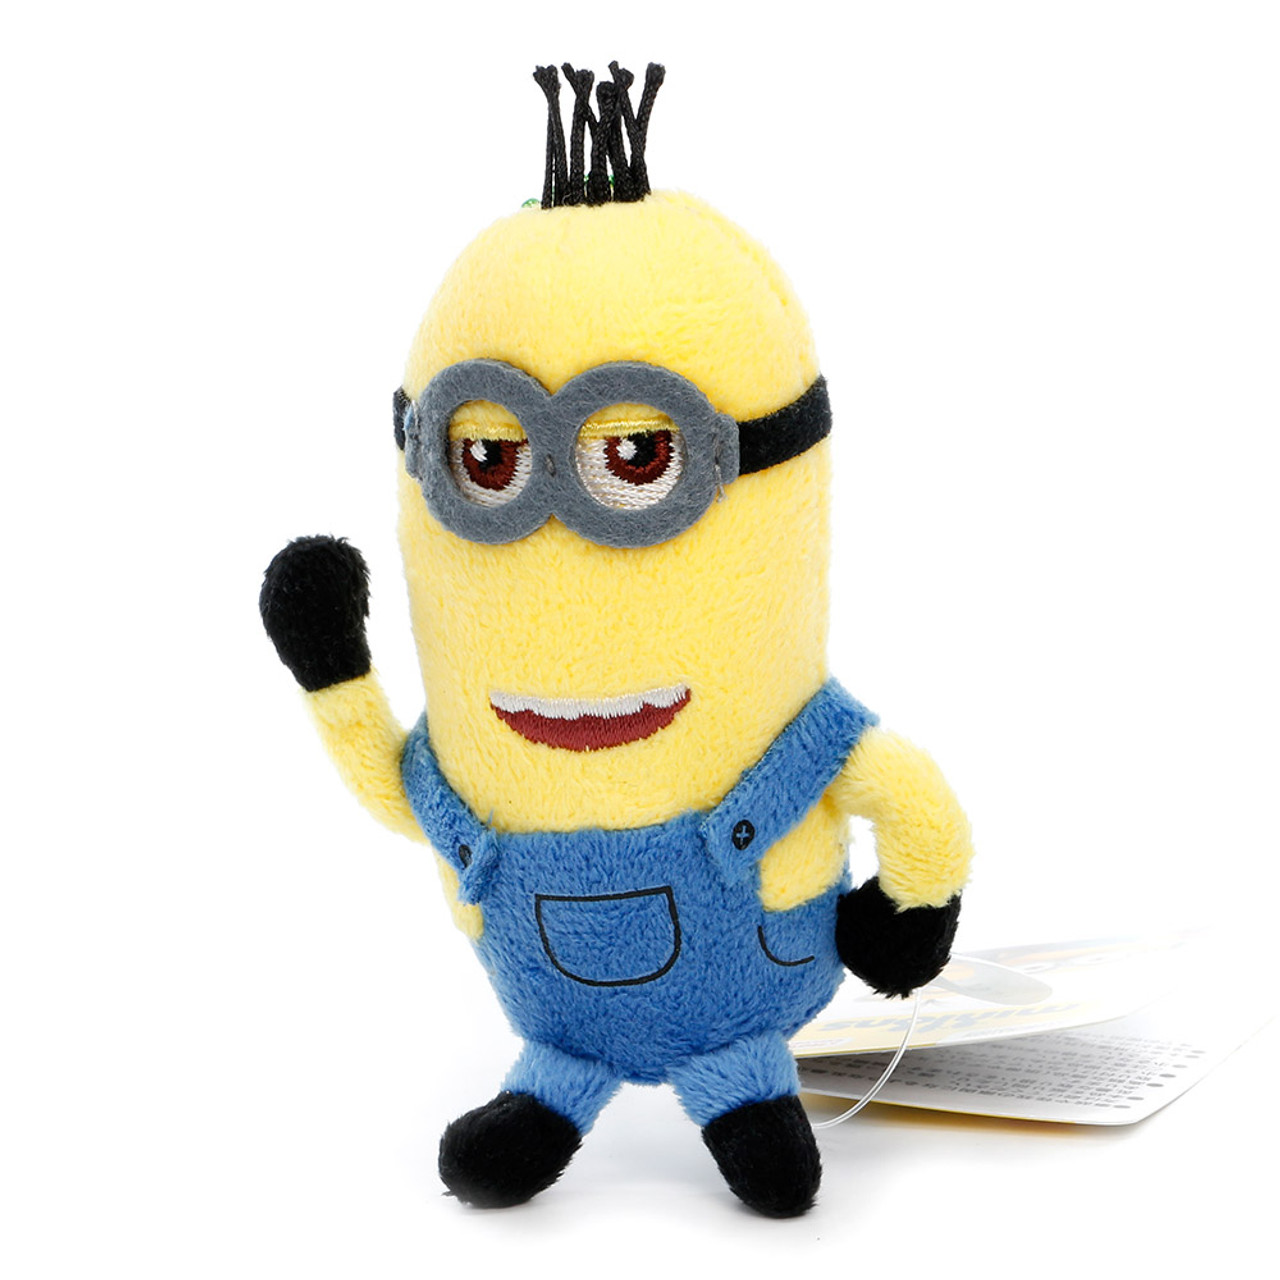 Kevin The Minions Mascot Plush Doll Charms ( Front View )